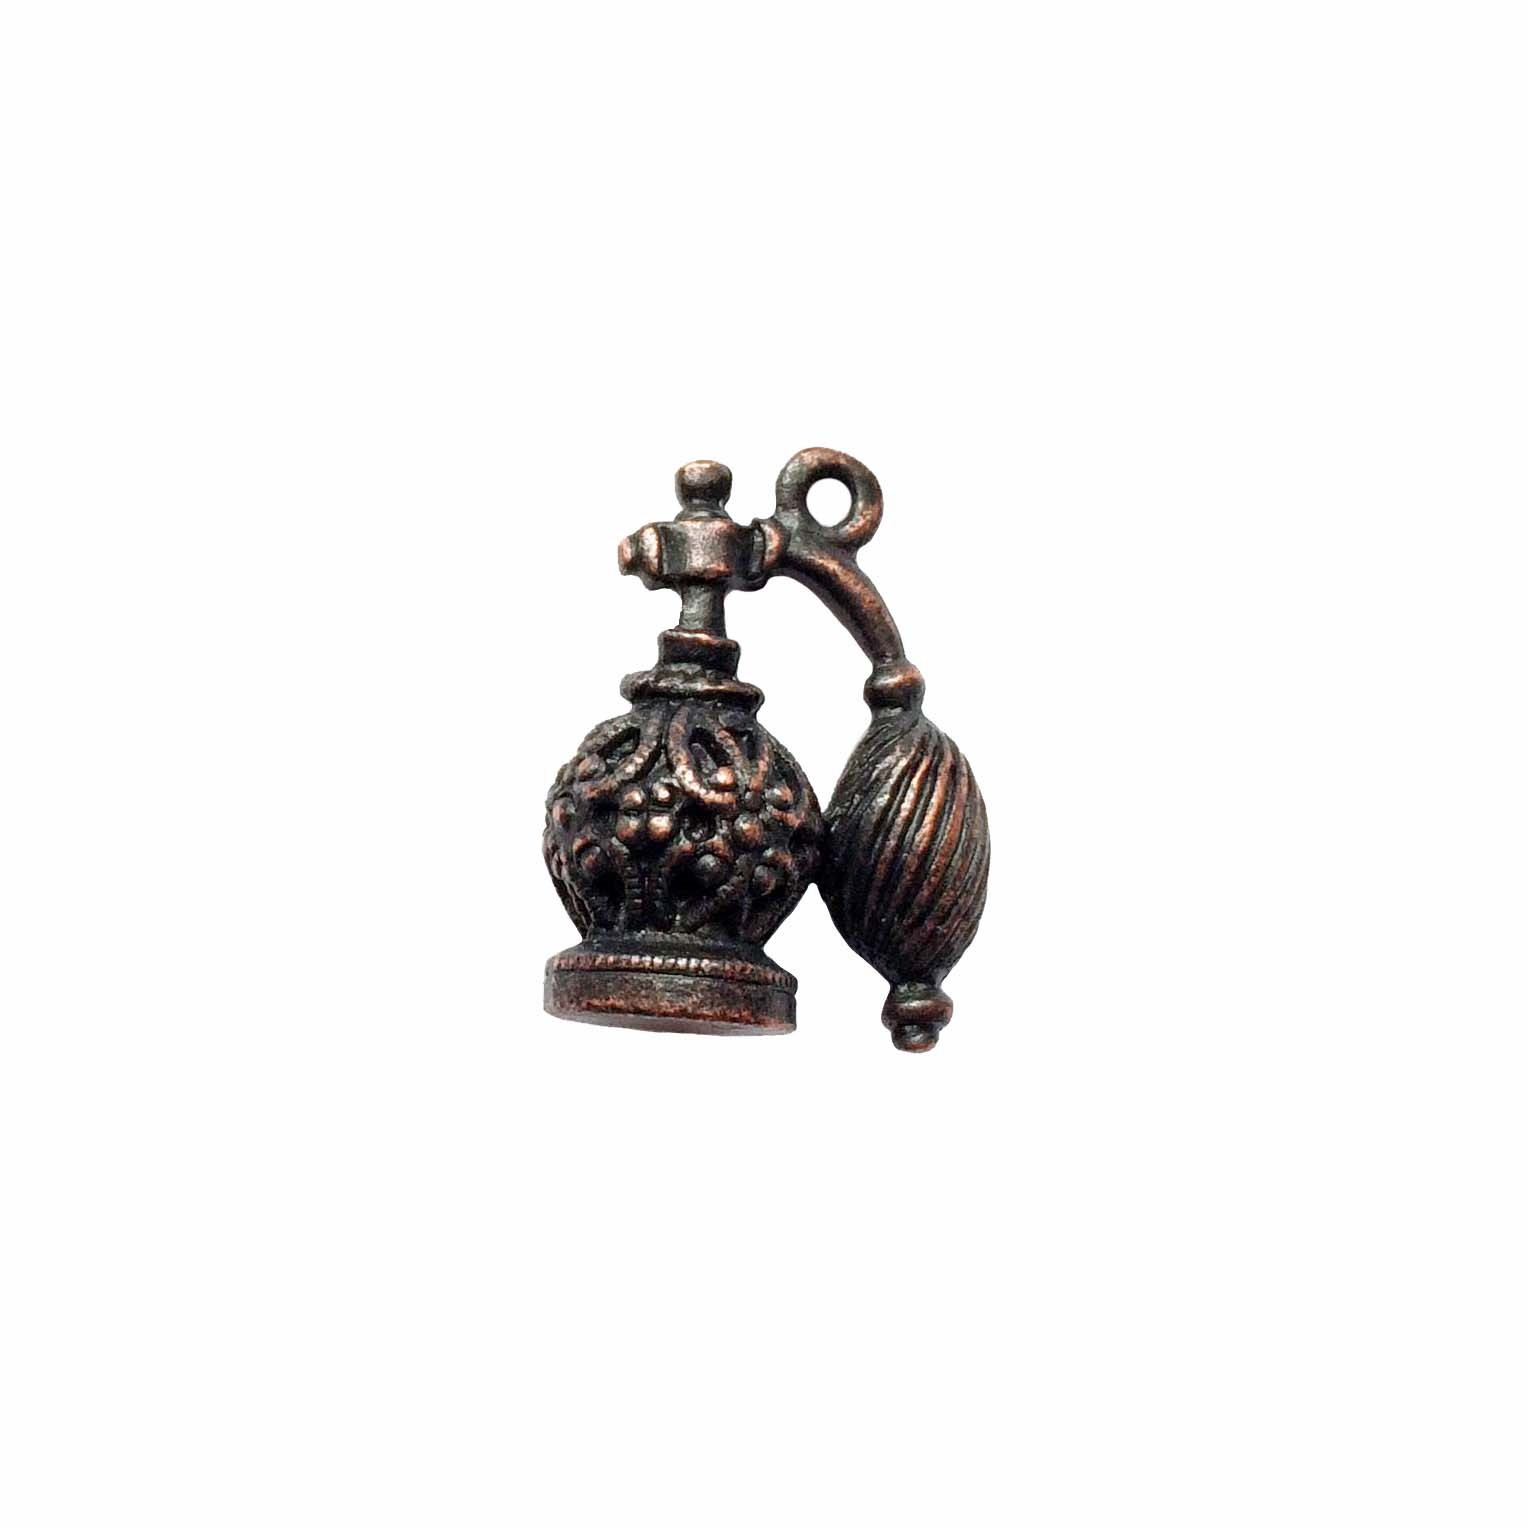 vintage pewter castings, B'sue by 1928, filigree perfume bottle,09785, rusted iron, nickel free finish, lead free pewter, vintage castings, rusty iron, made in the USA, designer jewelry, vintage jewelry supplies, pewter charms,1928 Jewelry, B'sue Boutique